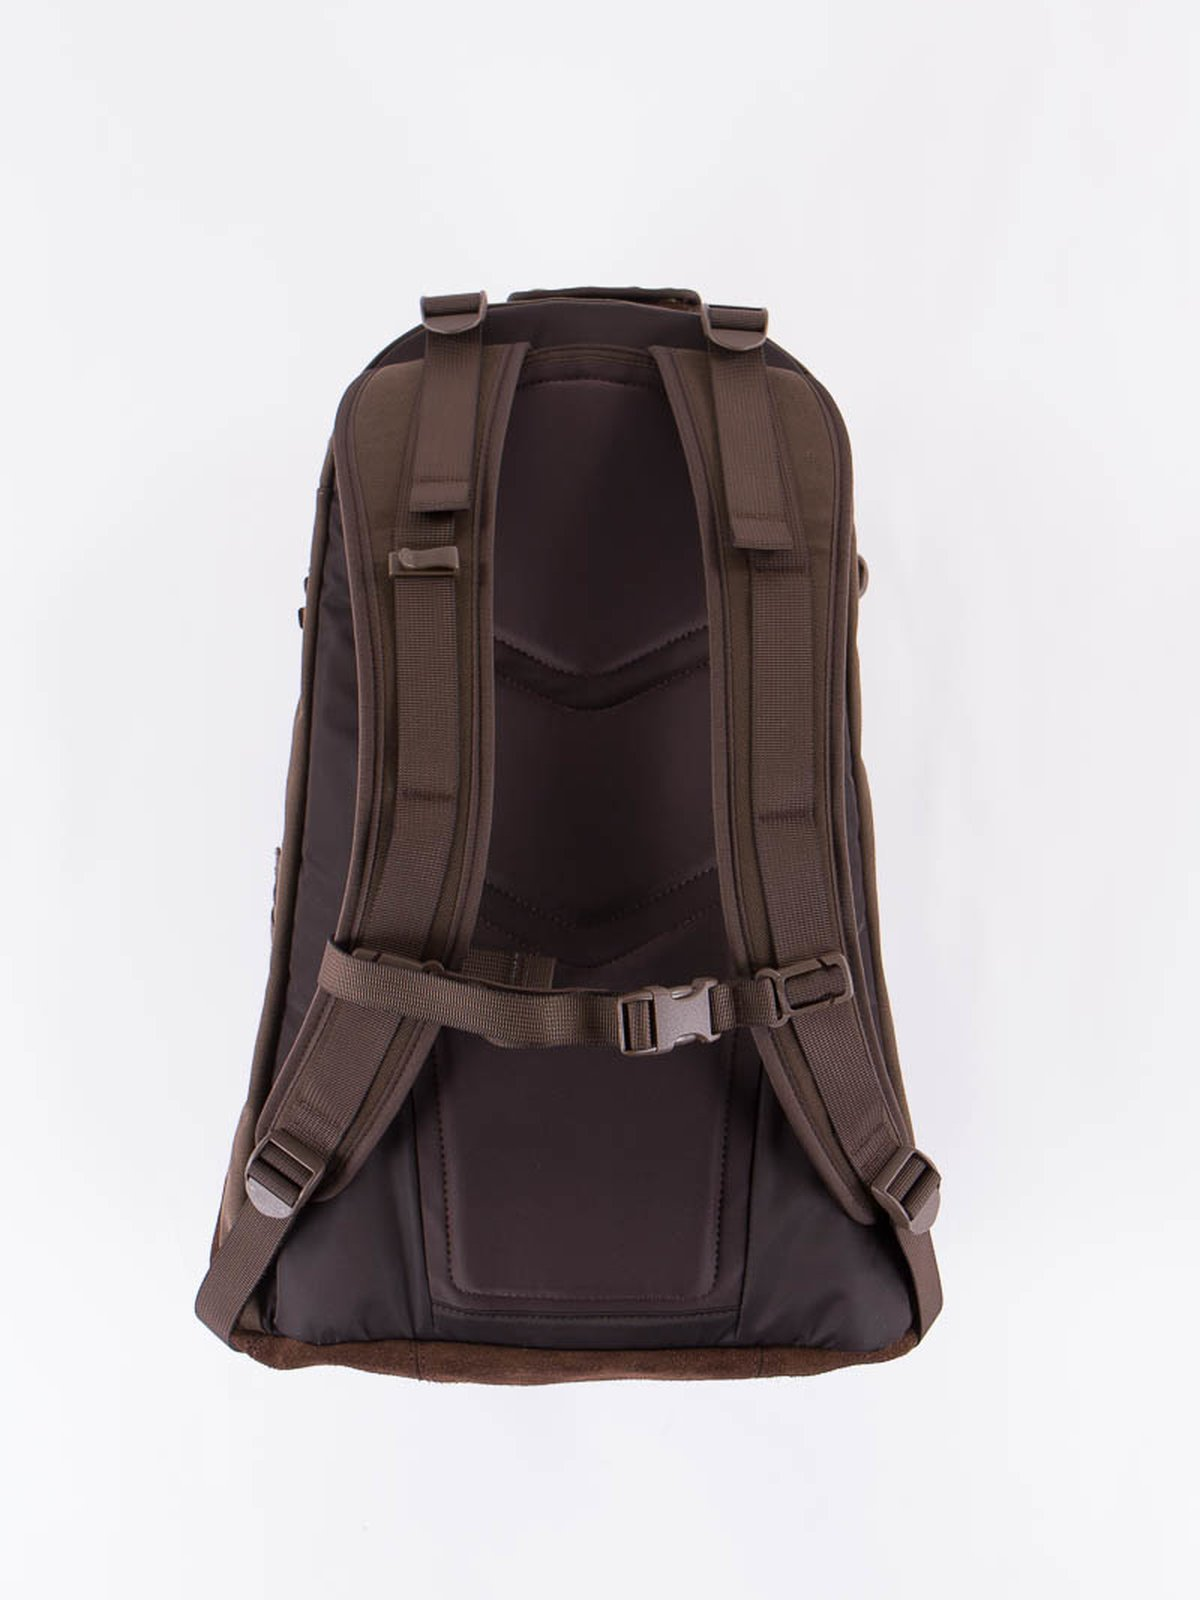 Brown 20L Ballistic Backpack - Image 6